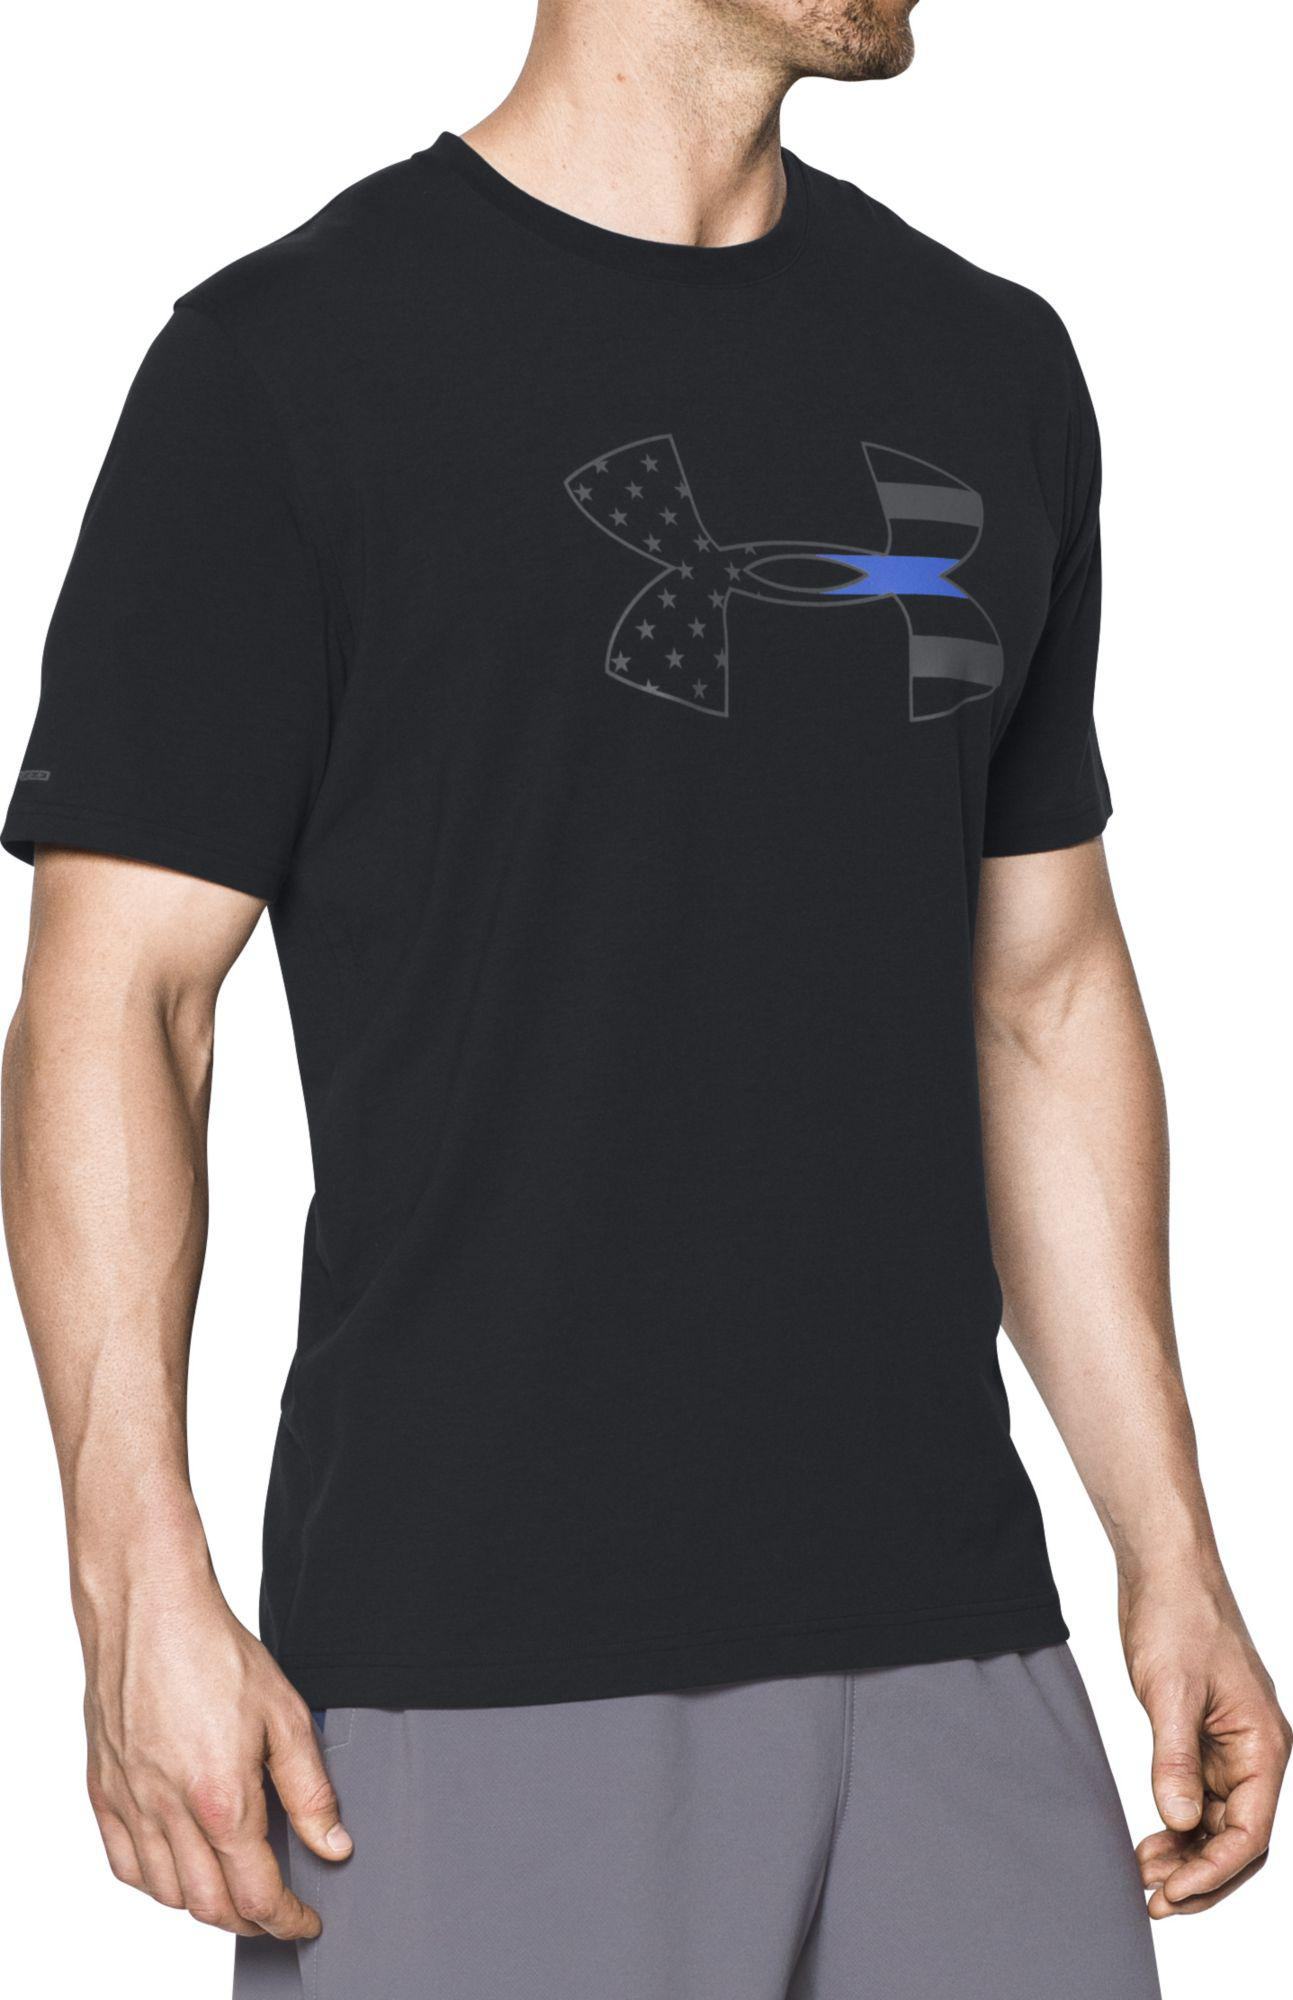 lyst under armour police thin blue line t shirt in black. Black Bedroom Furniture Sets. Home Design Ideas